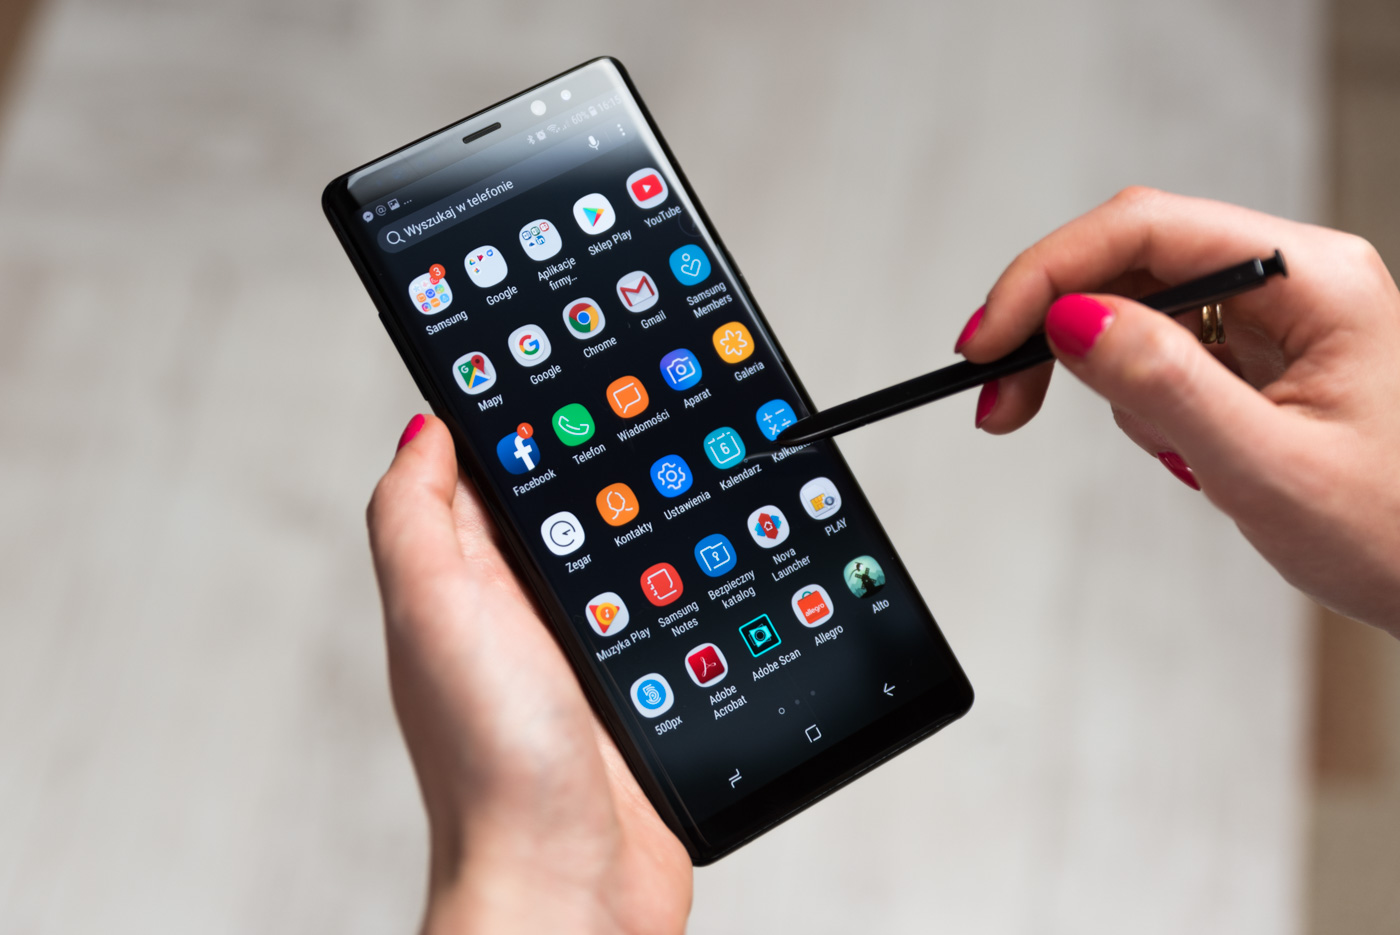 Samsung is now bringing the September security update to the Galaxy Note 8 and S9